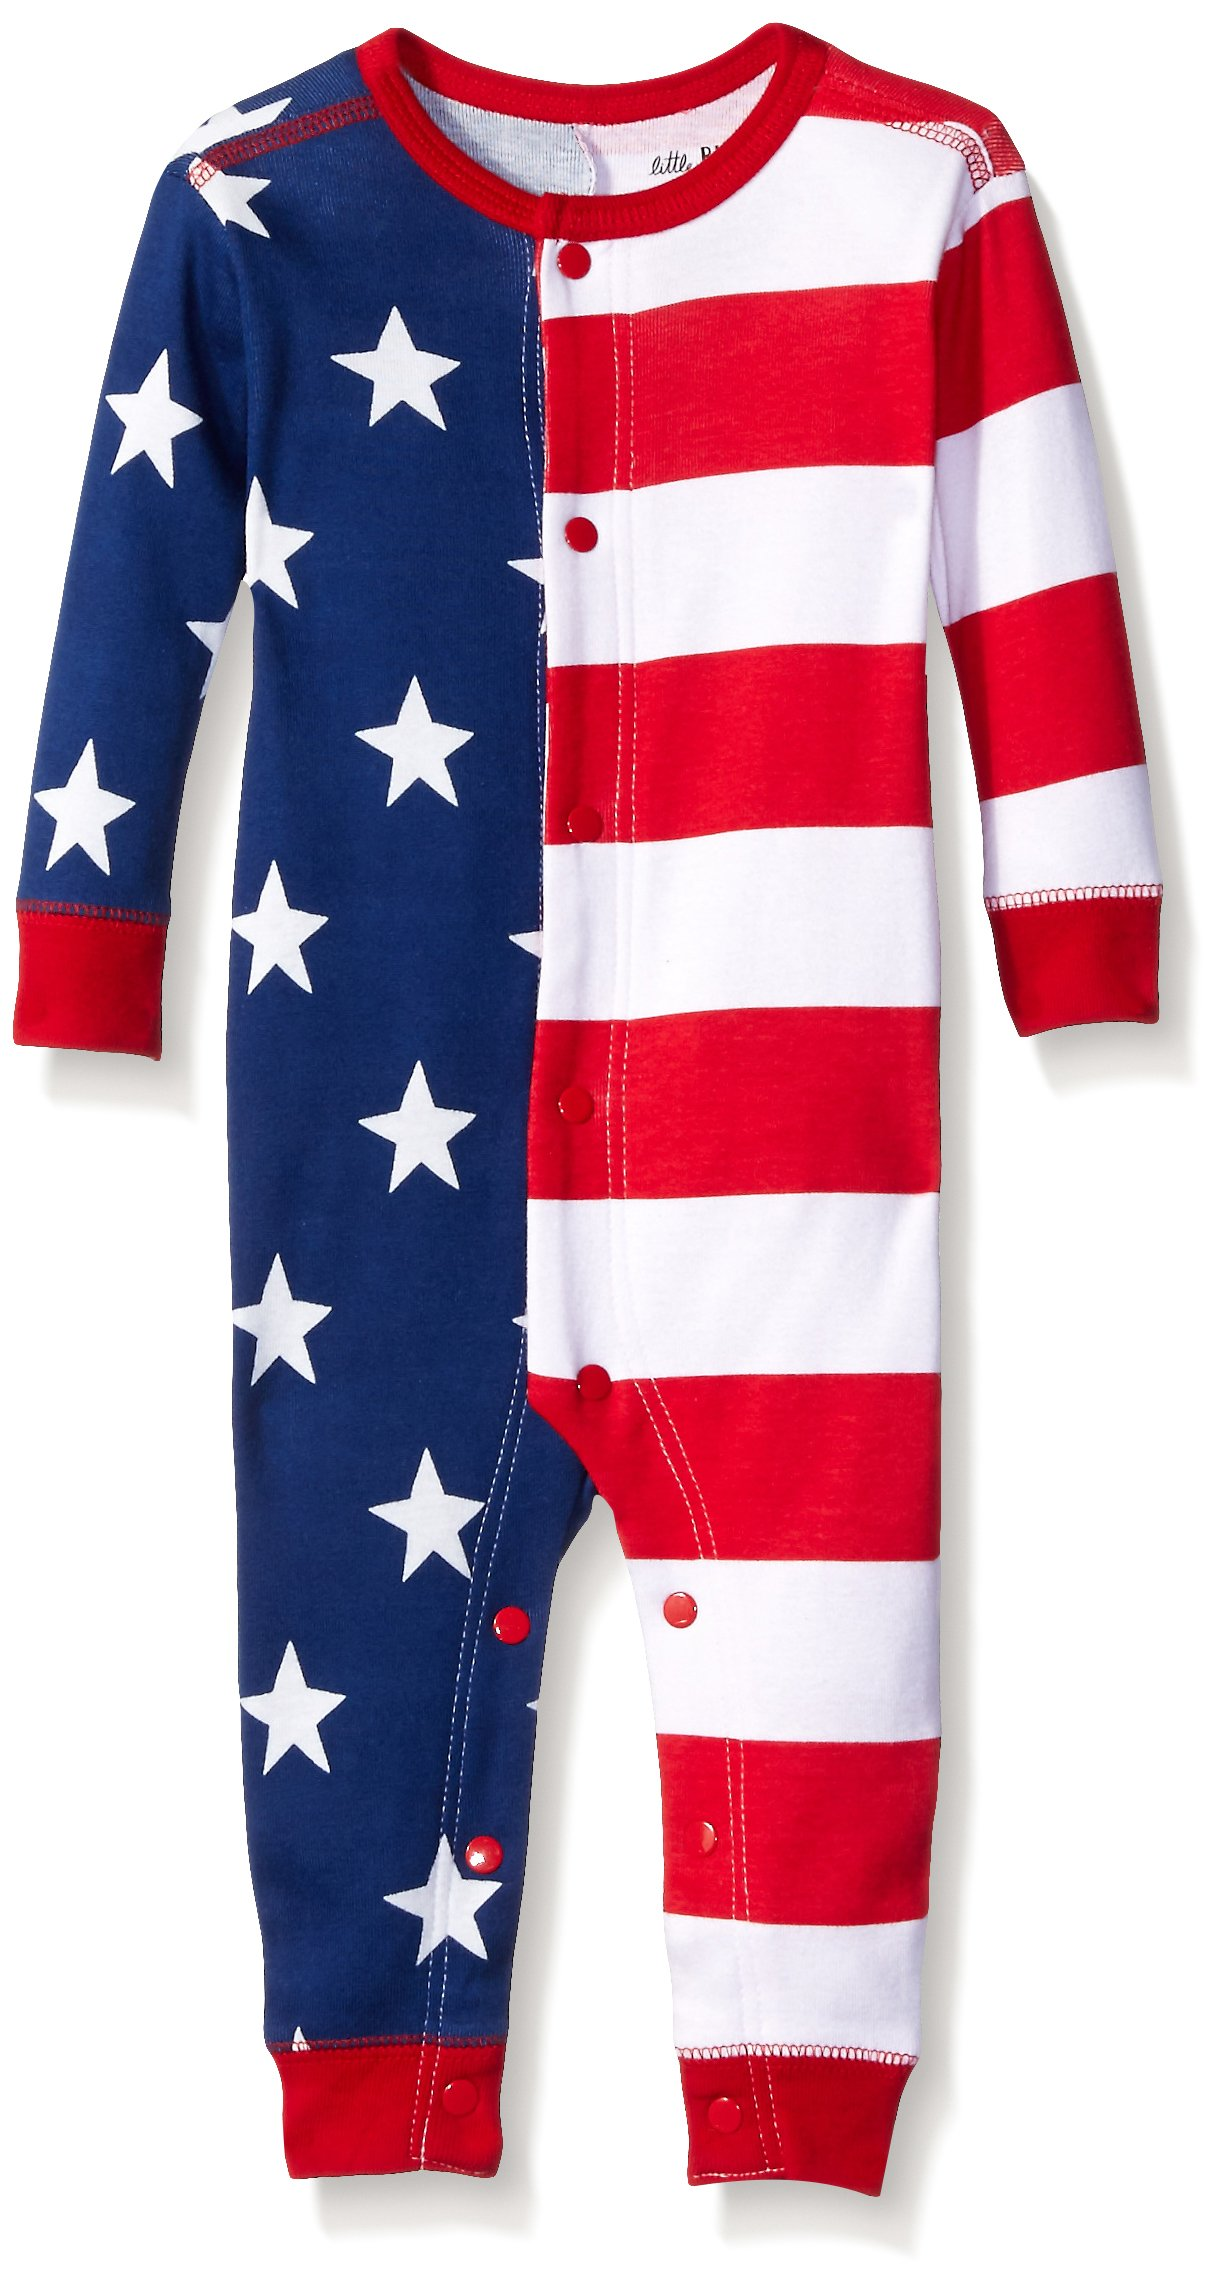 Little Blue House by Hatley Unisex Baby Union Suits, USA Flag, 6-12 Months by Little Blue House by Hatley